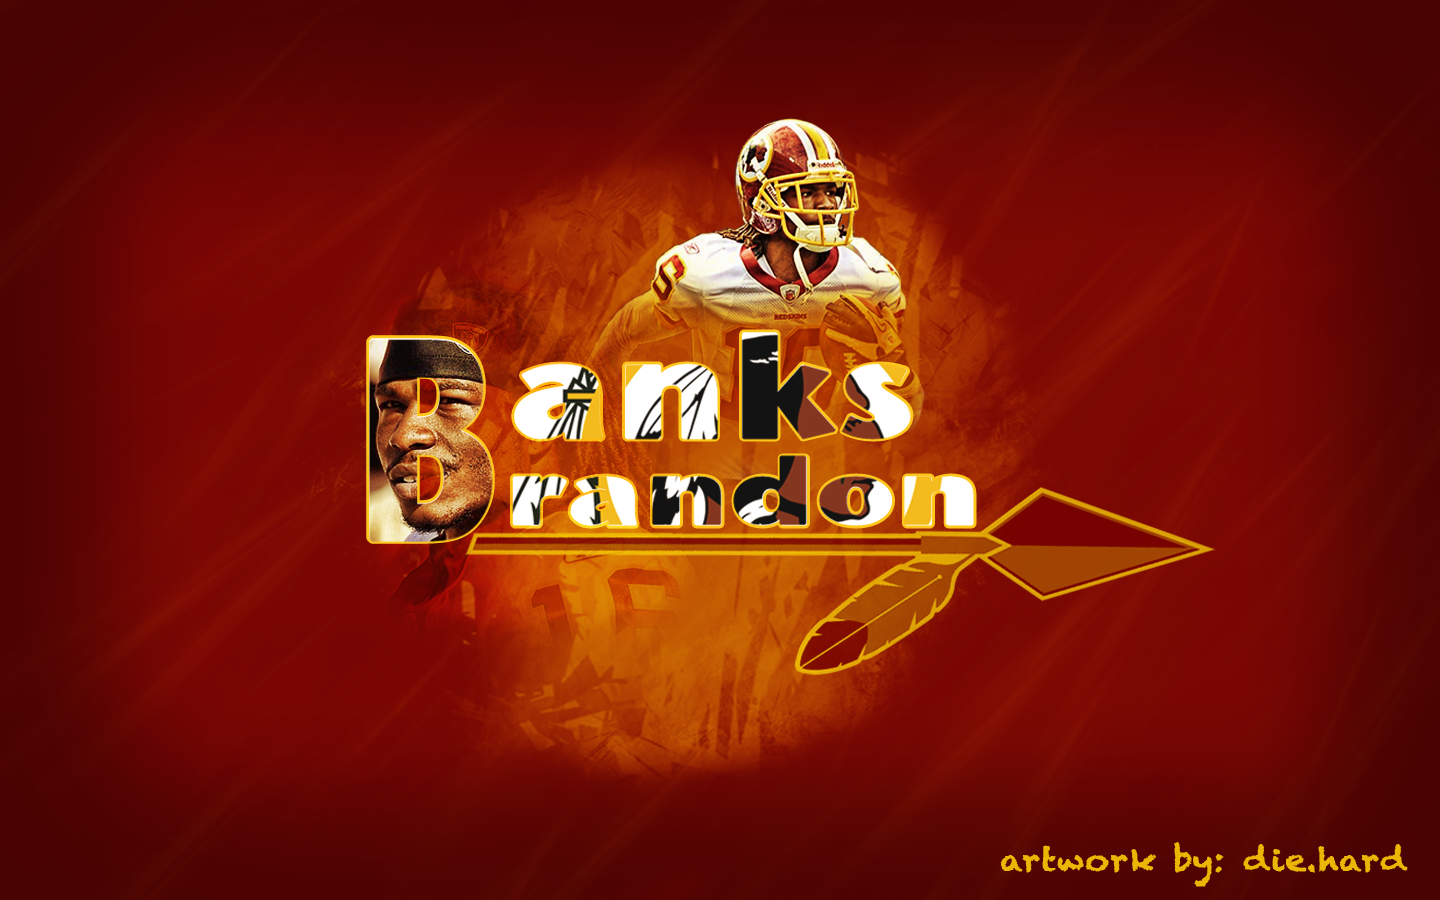 Washington Redskins wallpaper wallpaper Washington Redskins 1440x900